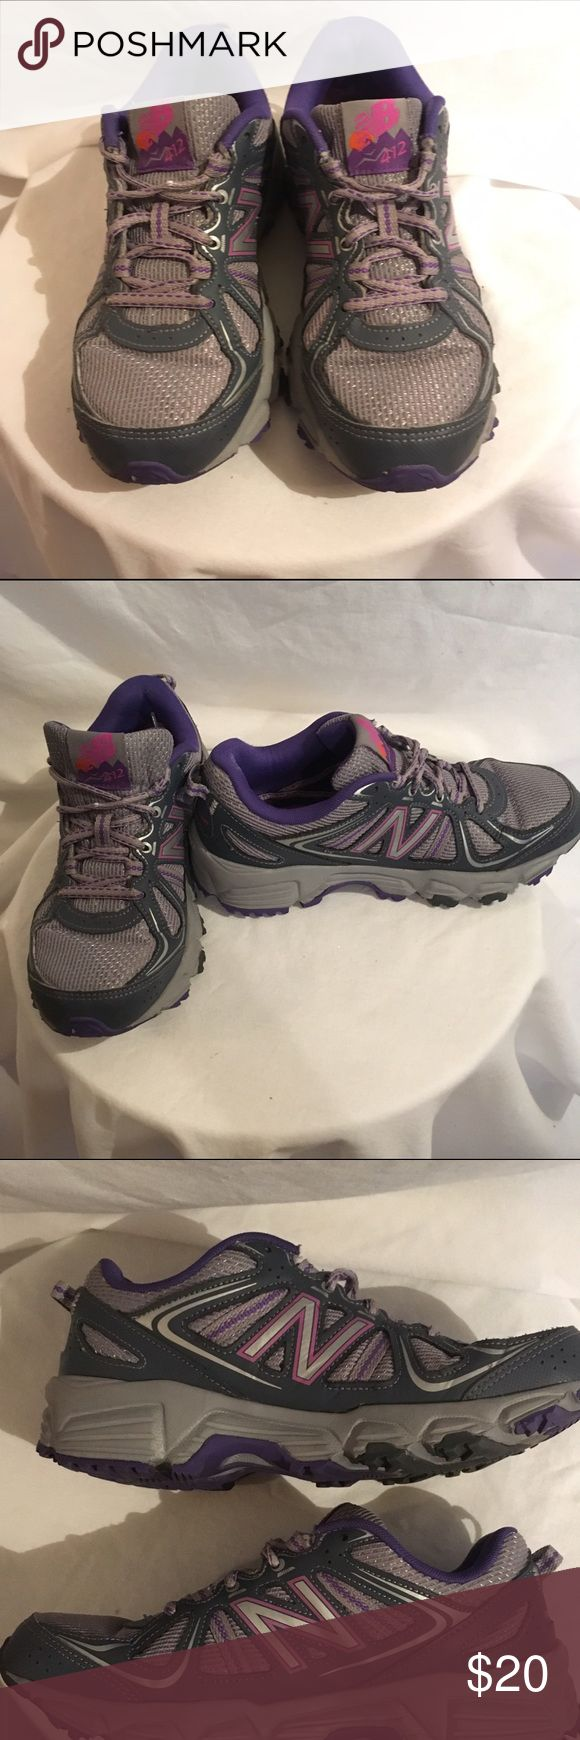 New Balance All Terrain Grey All Terrain 412 New Balance. They have been gently loved. One of the straps holding the shoe strings broke off (pic 5) It doesn't affect the shoes at all. Price is reflective. New Balance Shoes Athletic Shoes